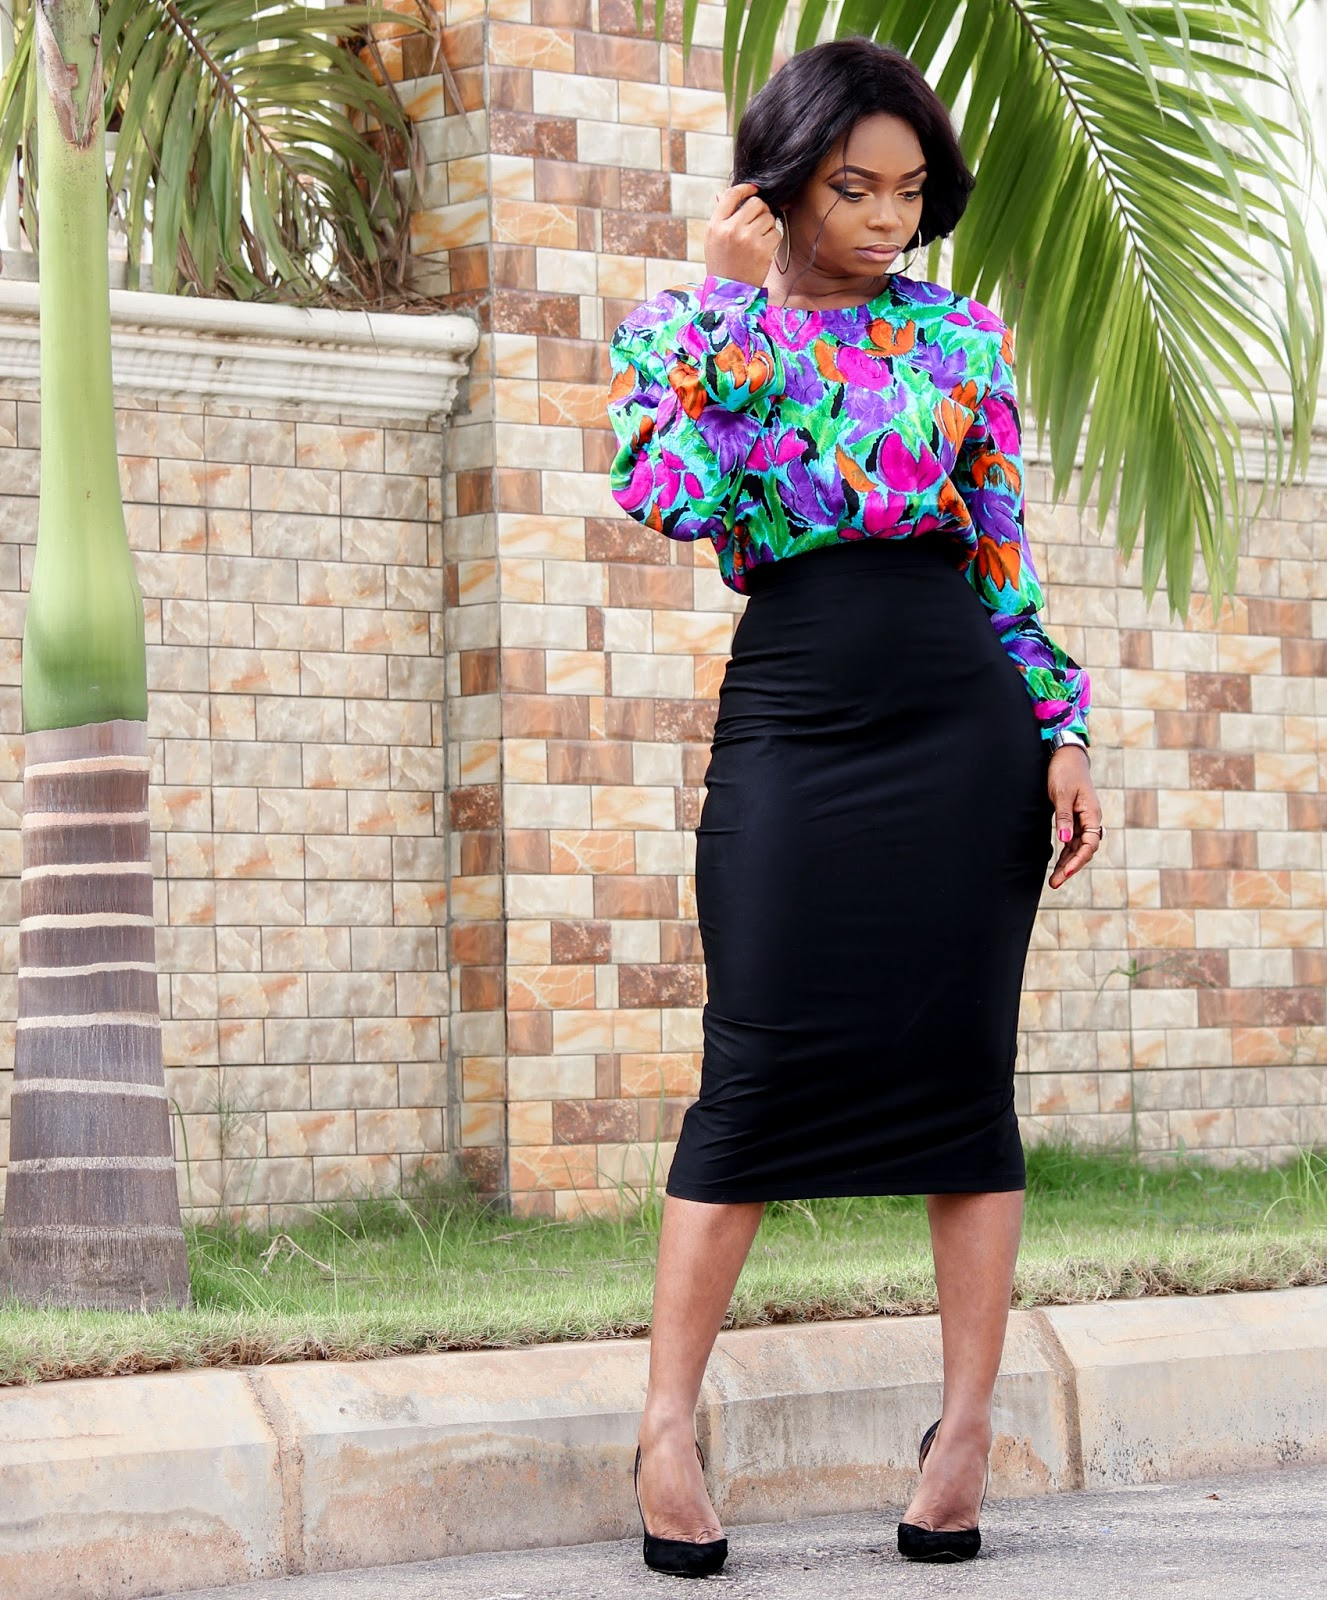 VINTAGE FLORAL - Vintage Floral Top from Vintage Closet and Black Pencil Skirt from Porshher with Boohoo Court Shoes